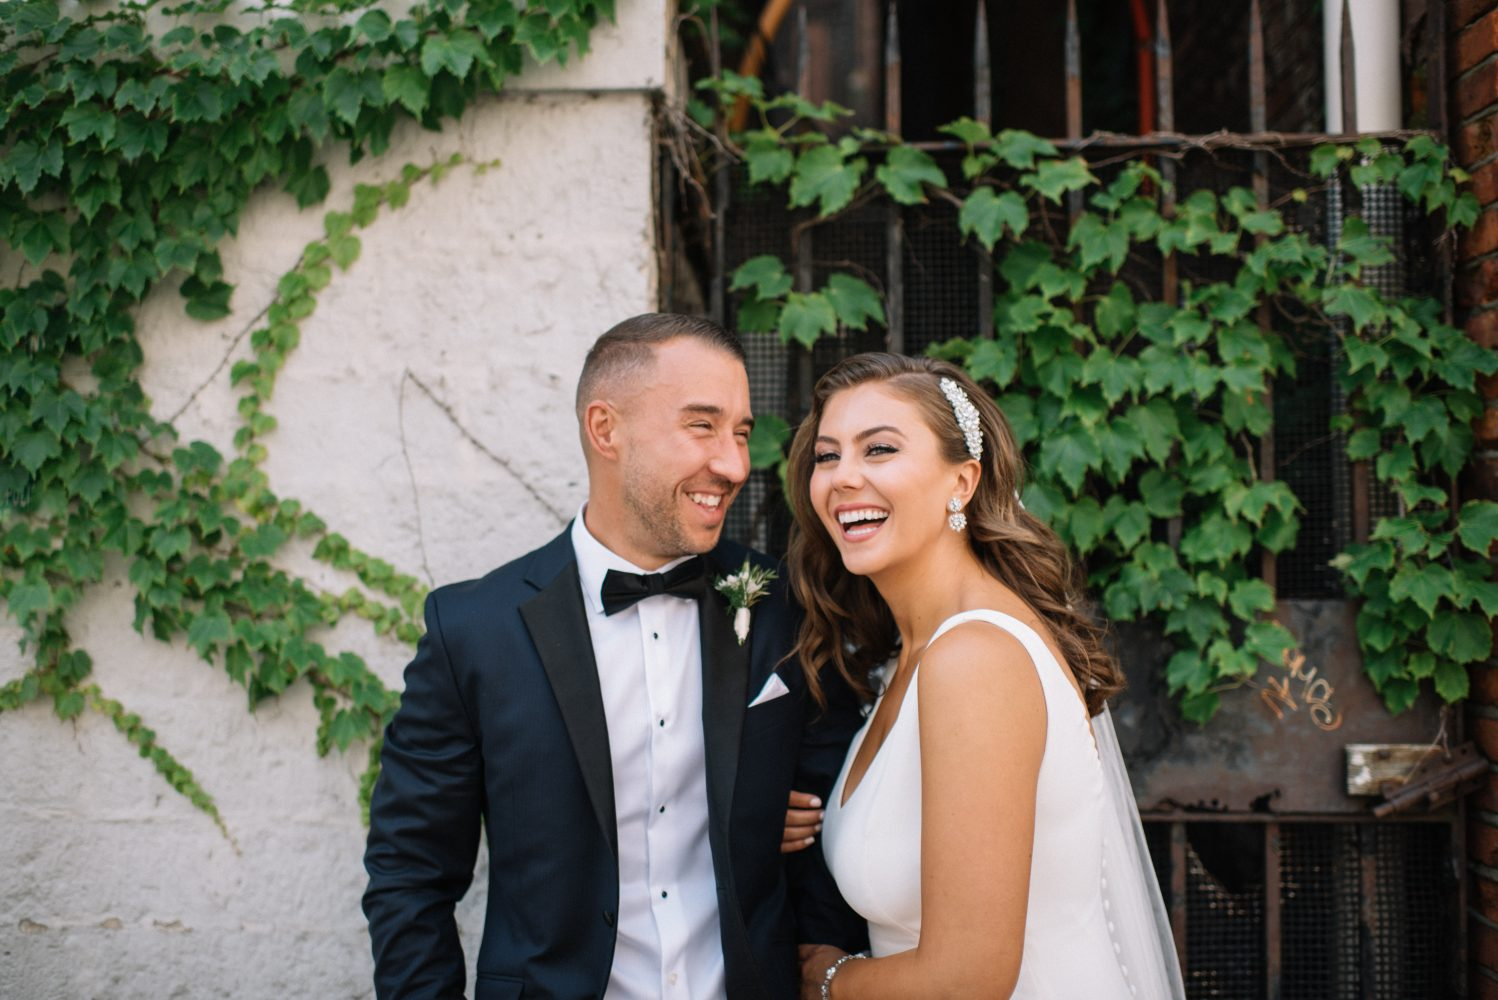 Instagram Influencer Caralyn Mirand's 1920s-Inspired Wedding Will Make You Raise a Glass